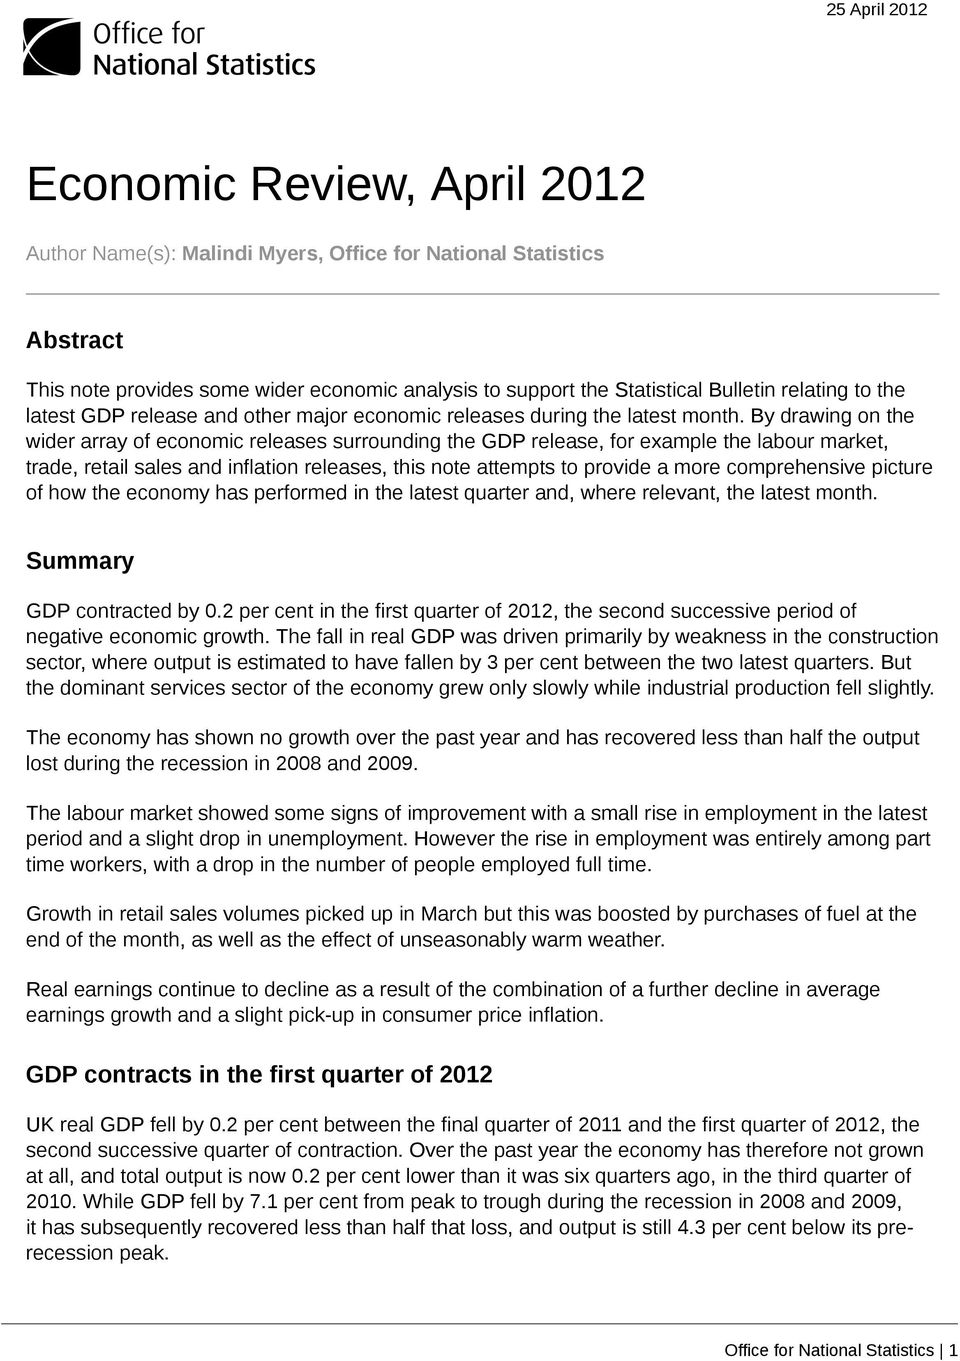 By drawing on the wider array of economic releases surrounding the GDP release, for example the labour market, trade, retail sales and inflation releases, this note attempts to provide a more